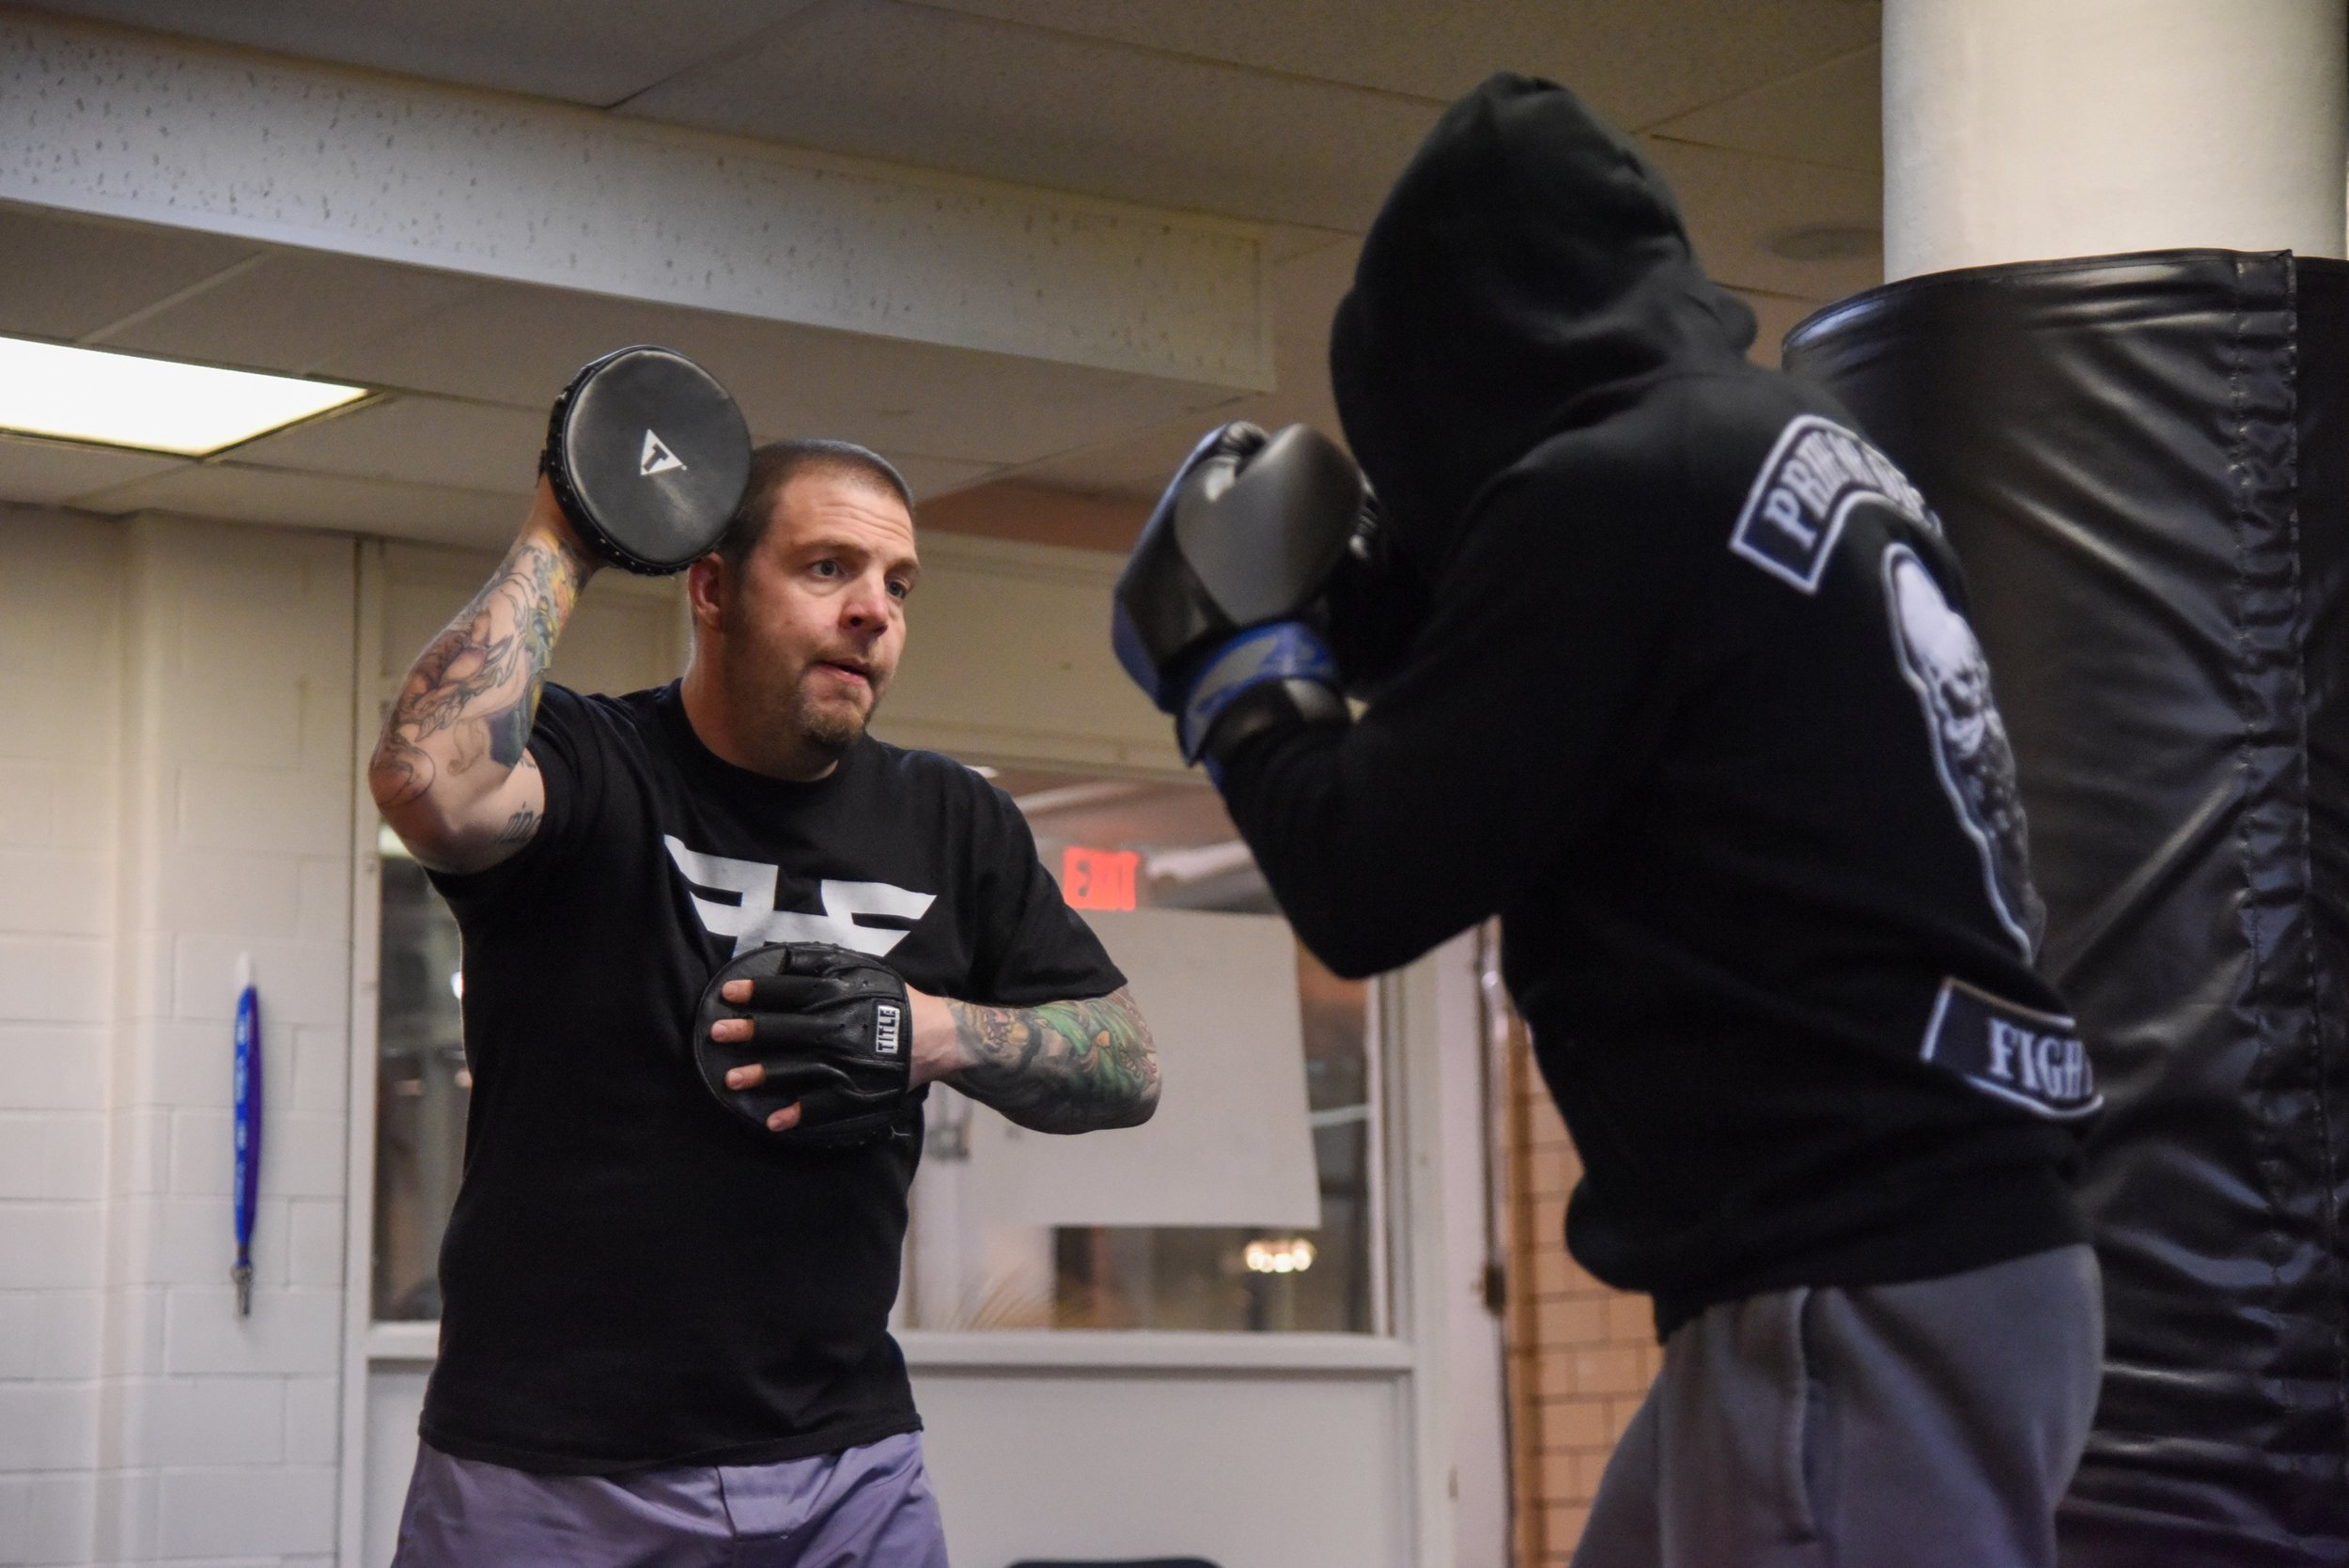 Mitt Madness - Come spend a fast-paced hour working with a partner working your striking, footwork, head movement, etc., but with a focus on breaking a sweat and burning some calories. No experience necessary!Boxing gloves are required for members.